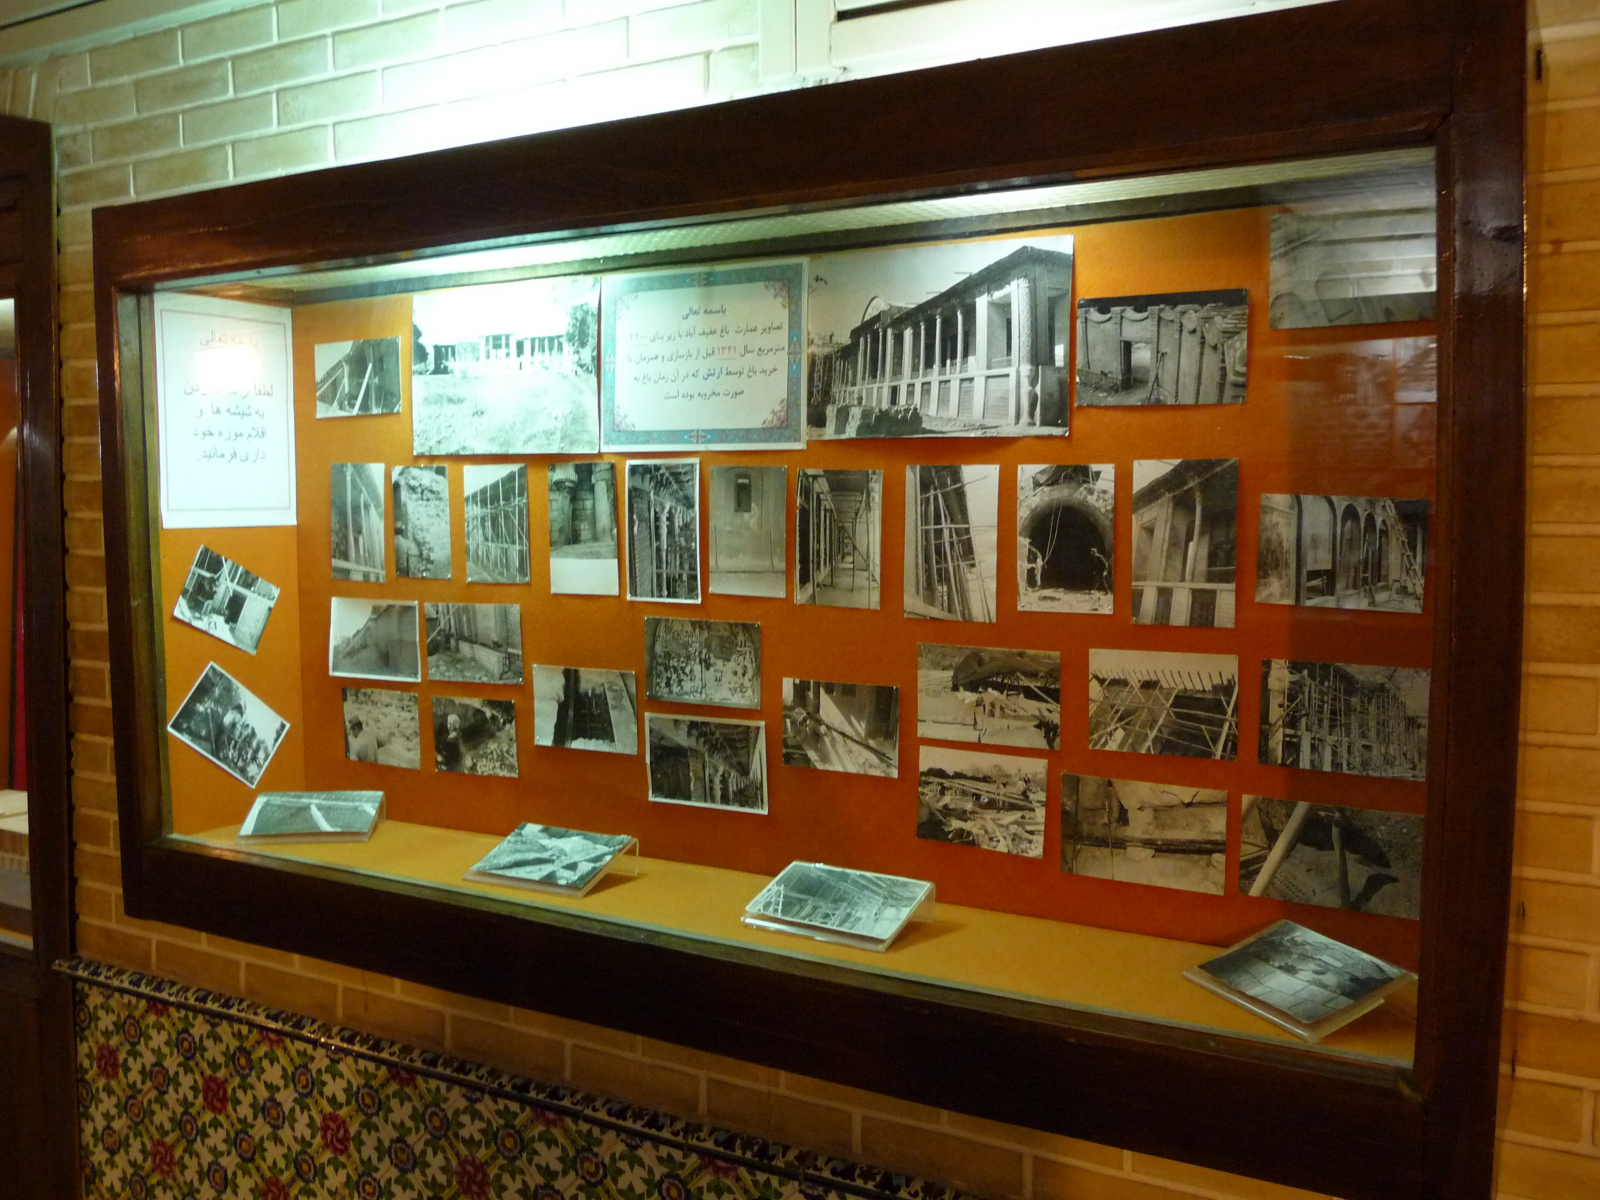 Baq-e Afifabad - Museum - Showcase Old Pictures